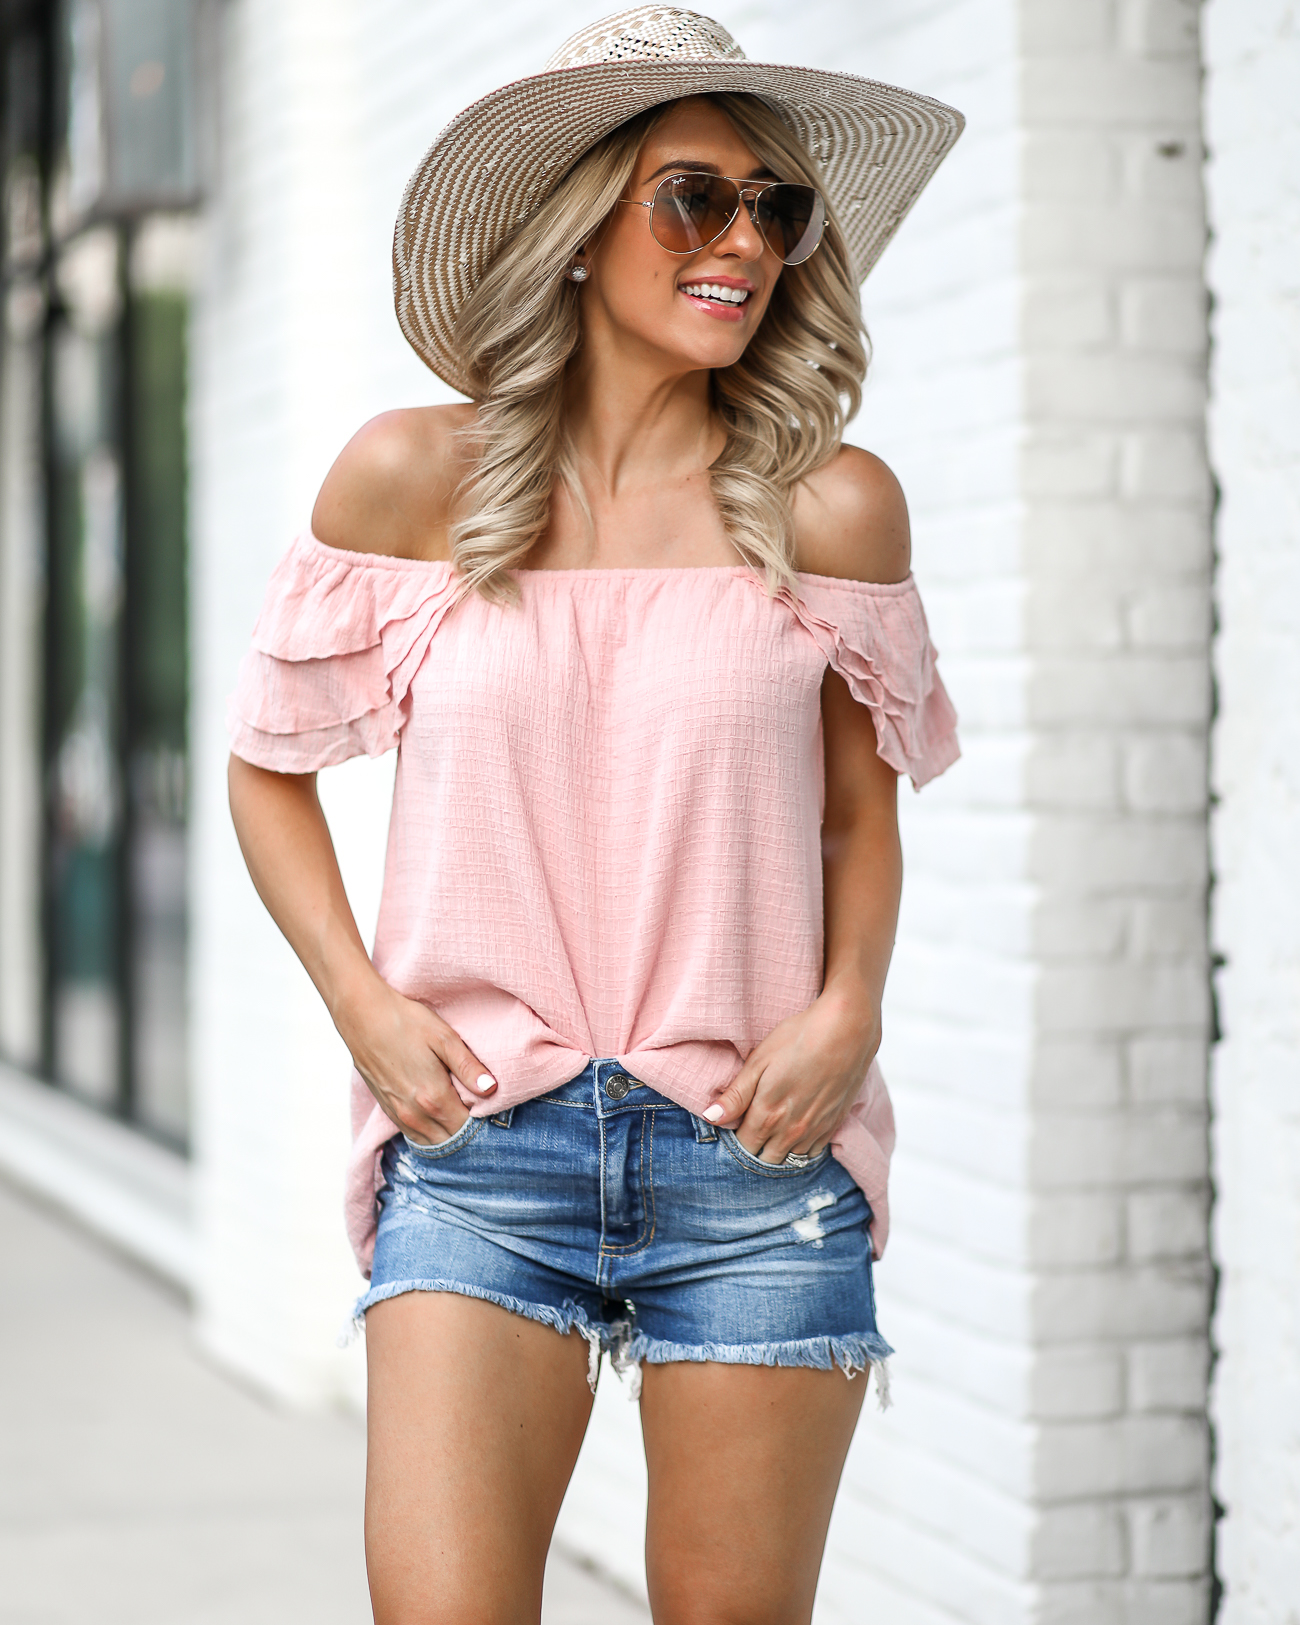 Summer Shorts Outfits Denim Shorts Under $50 Steven Greece Slides Pink Ray Ban Sunglasses White Floppy Hat Pink Off the shoulder top